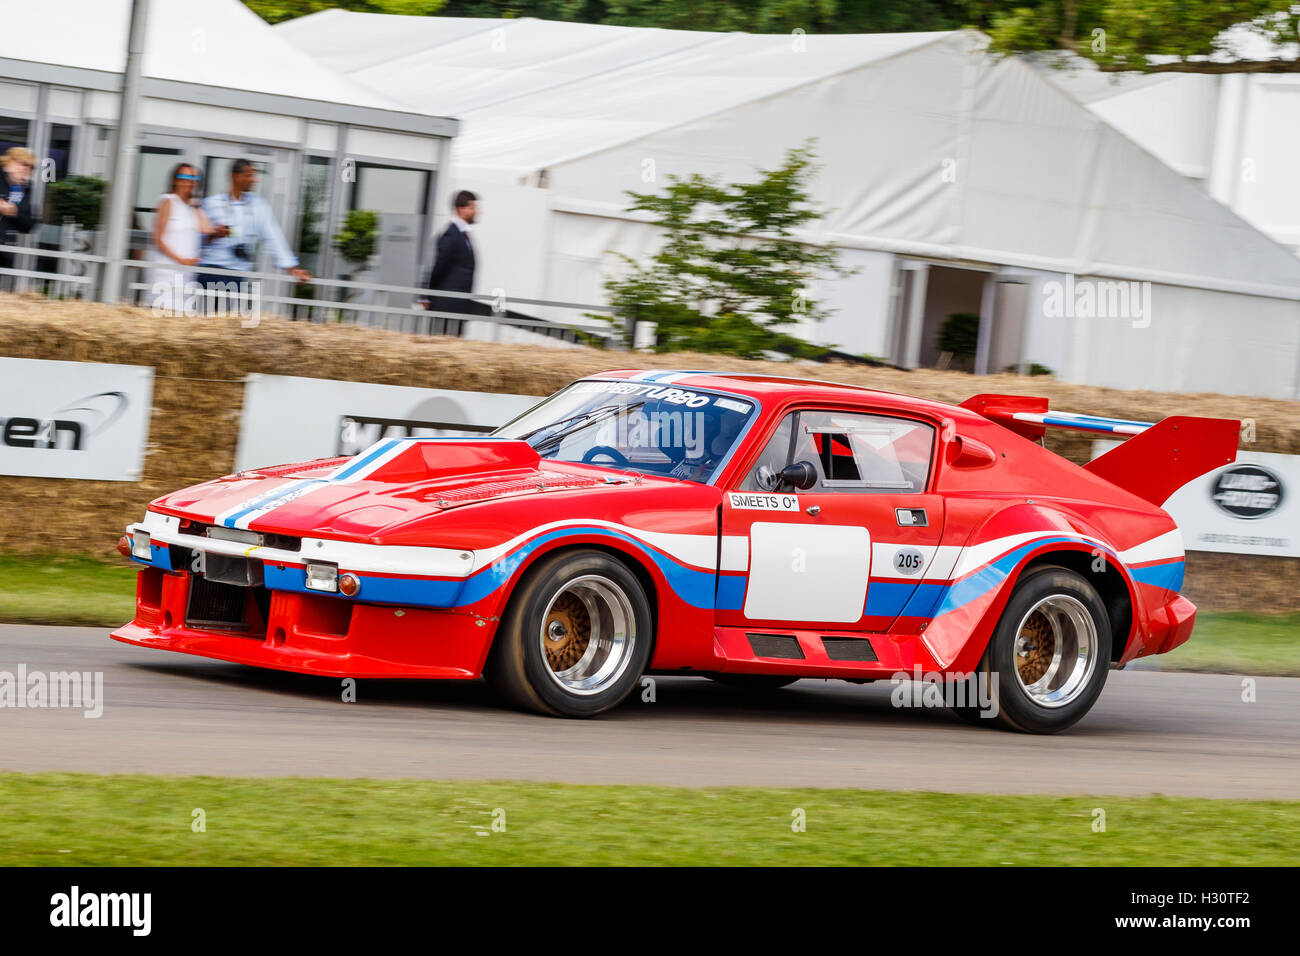 1977 triumph tr7 v8 turbo le mans with driver bert smeets at the 2016 stock photo royalty free. Black Bedroom Furniture Sets. Home Design Ideas